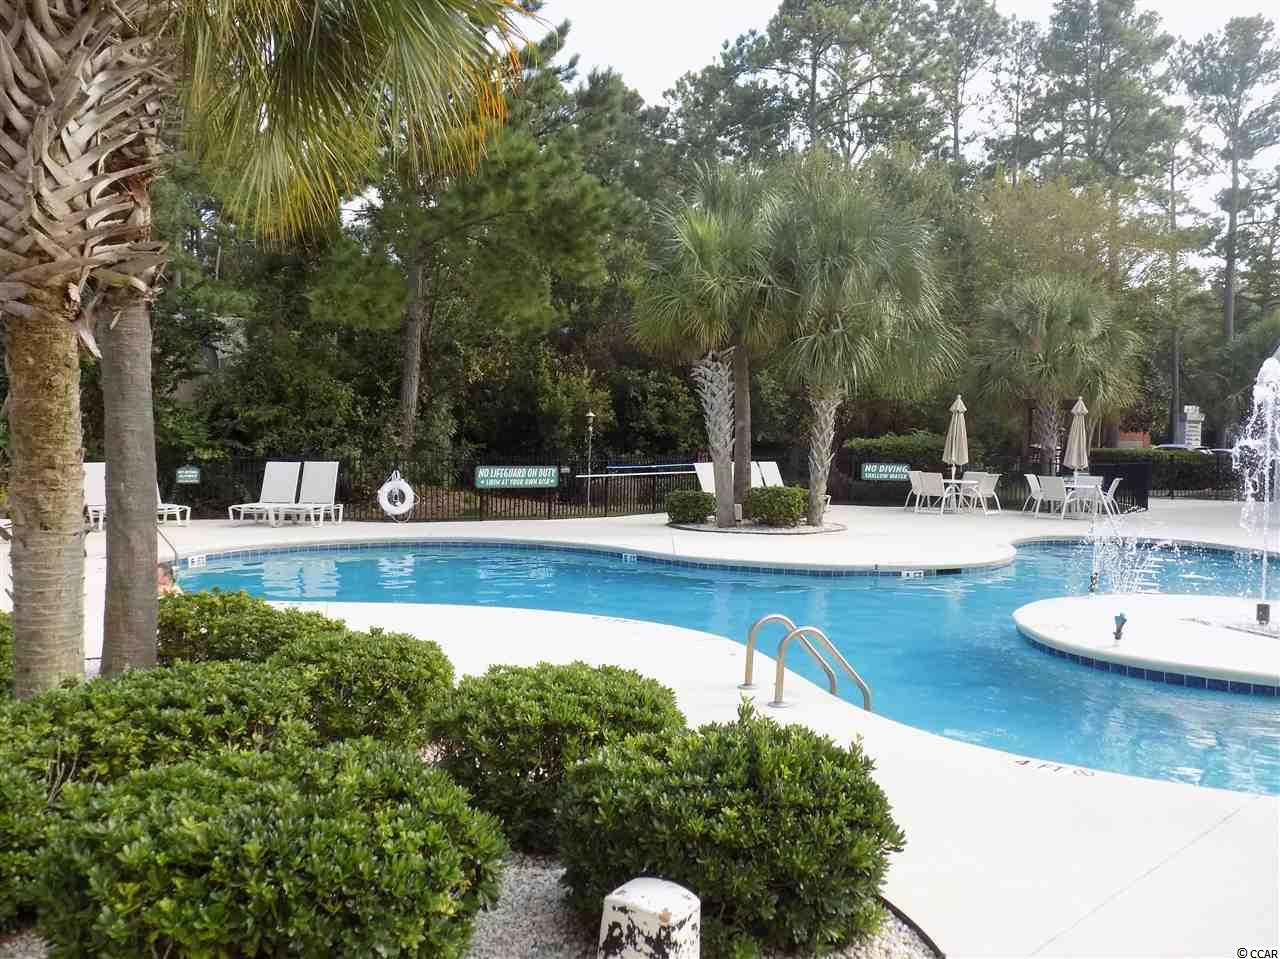 This 1 bedroom condo at  Savannah Shores is currently for sale